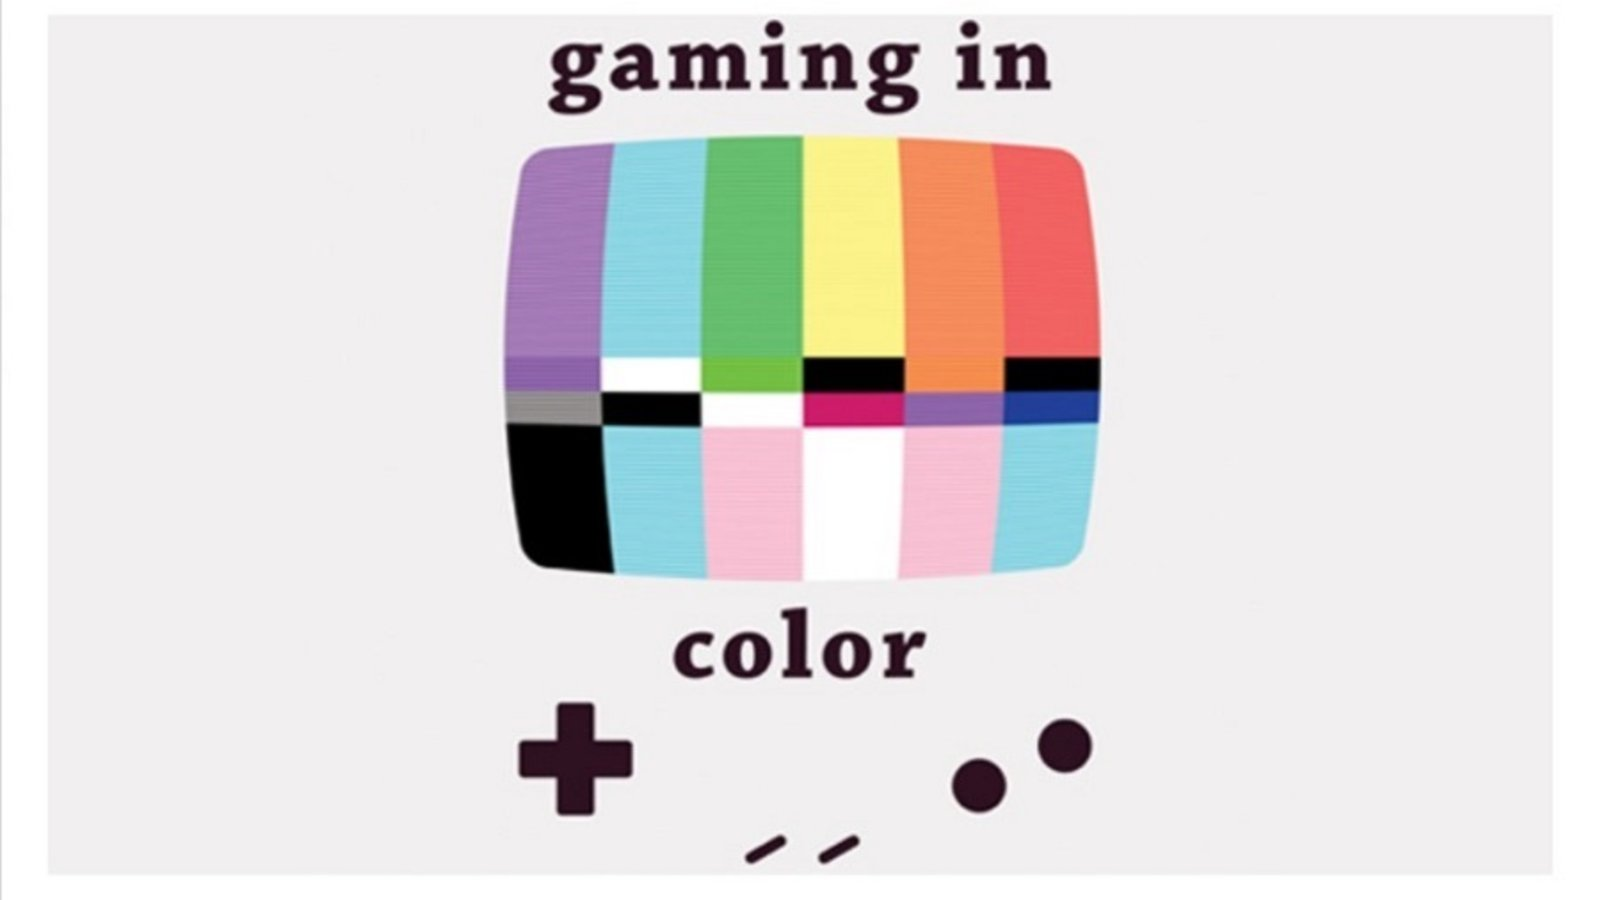 Gaming in Color - The Queer Side of Gaming